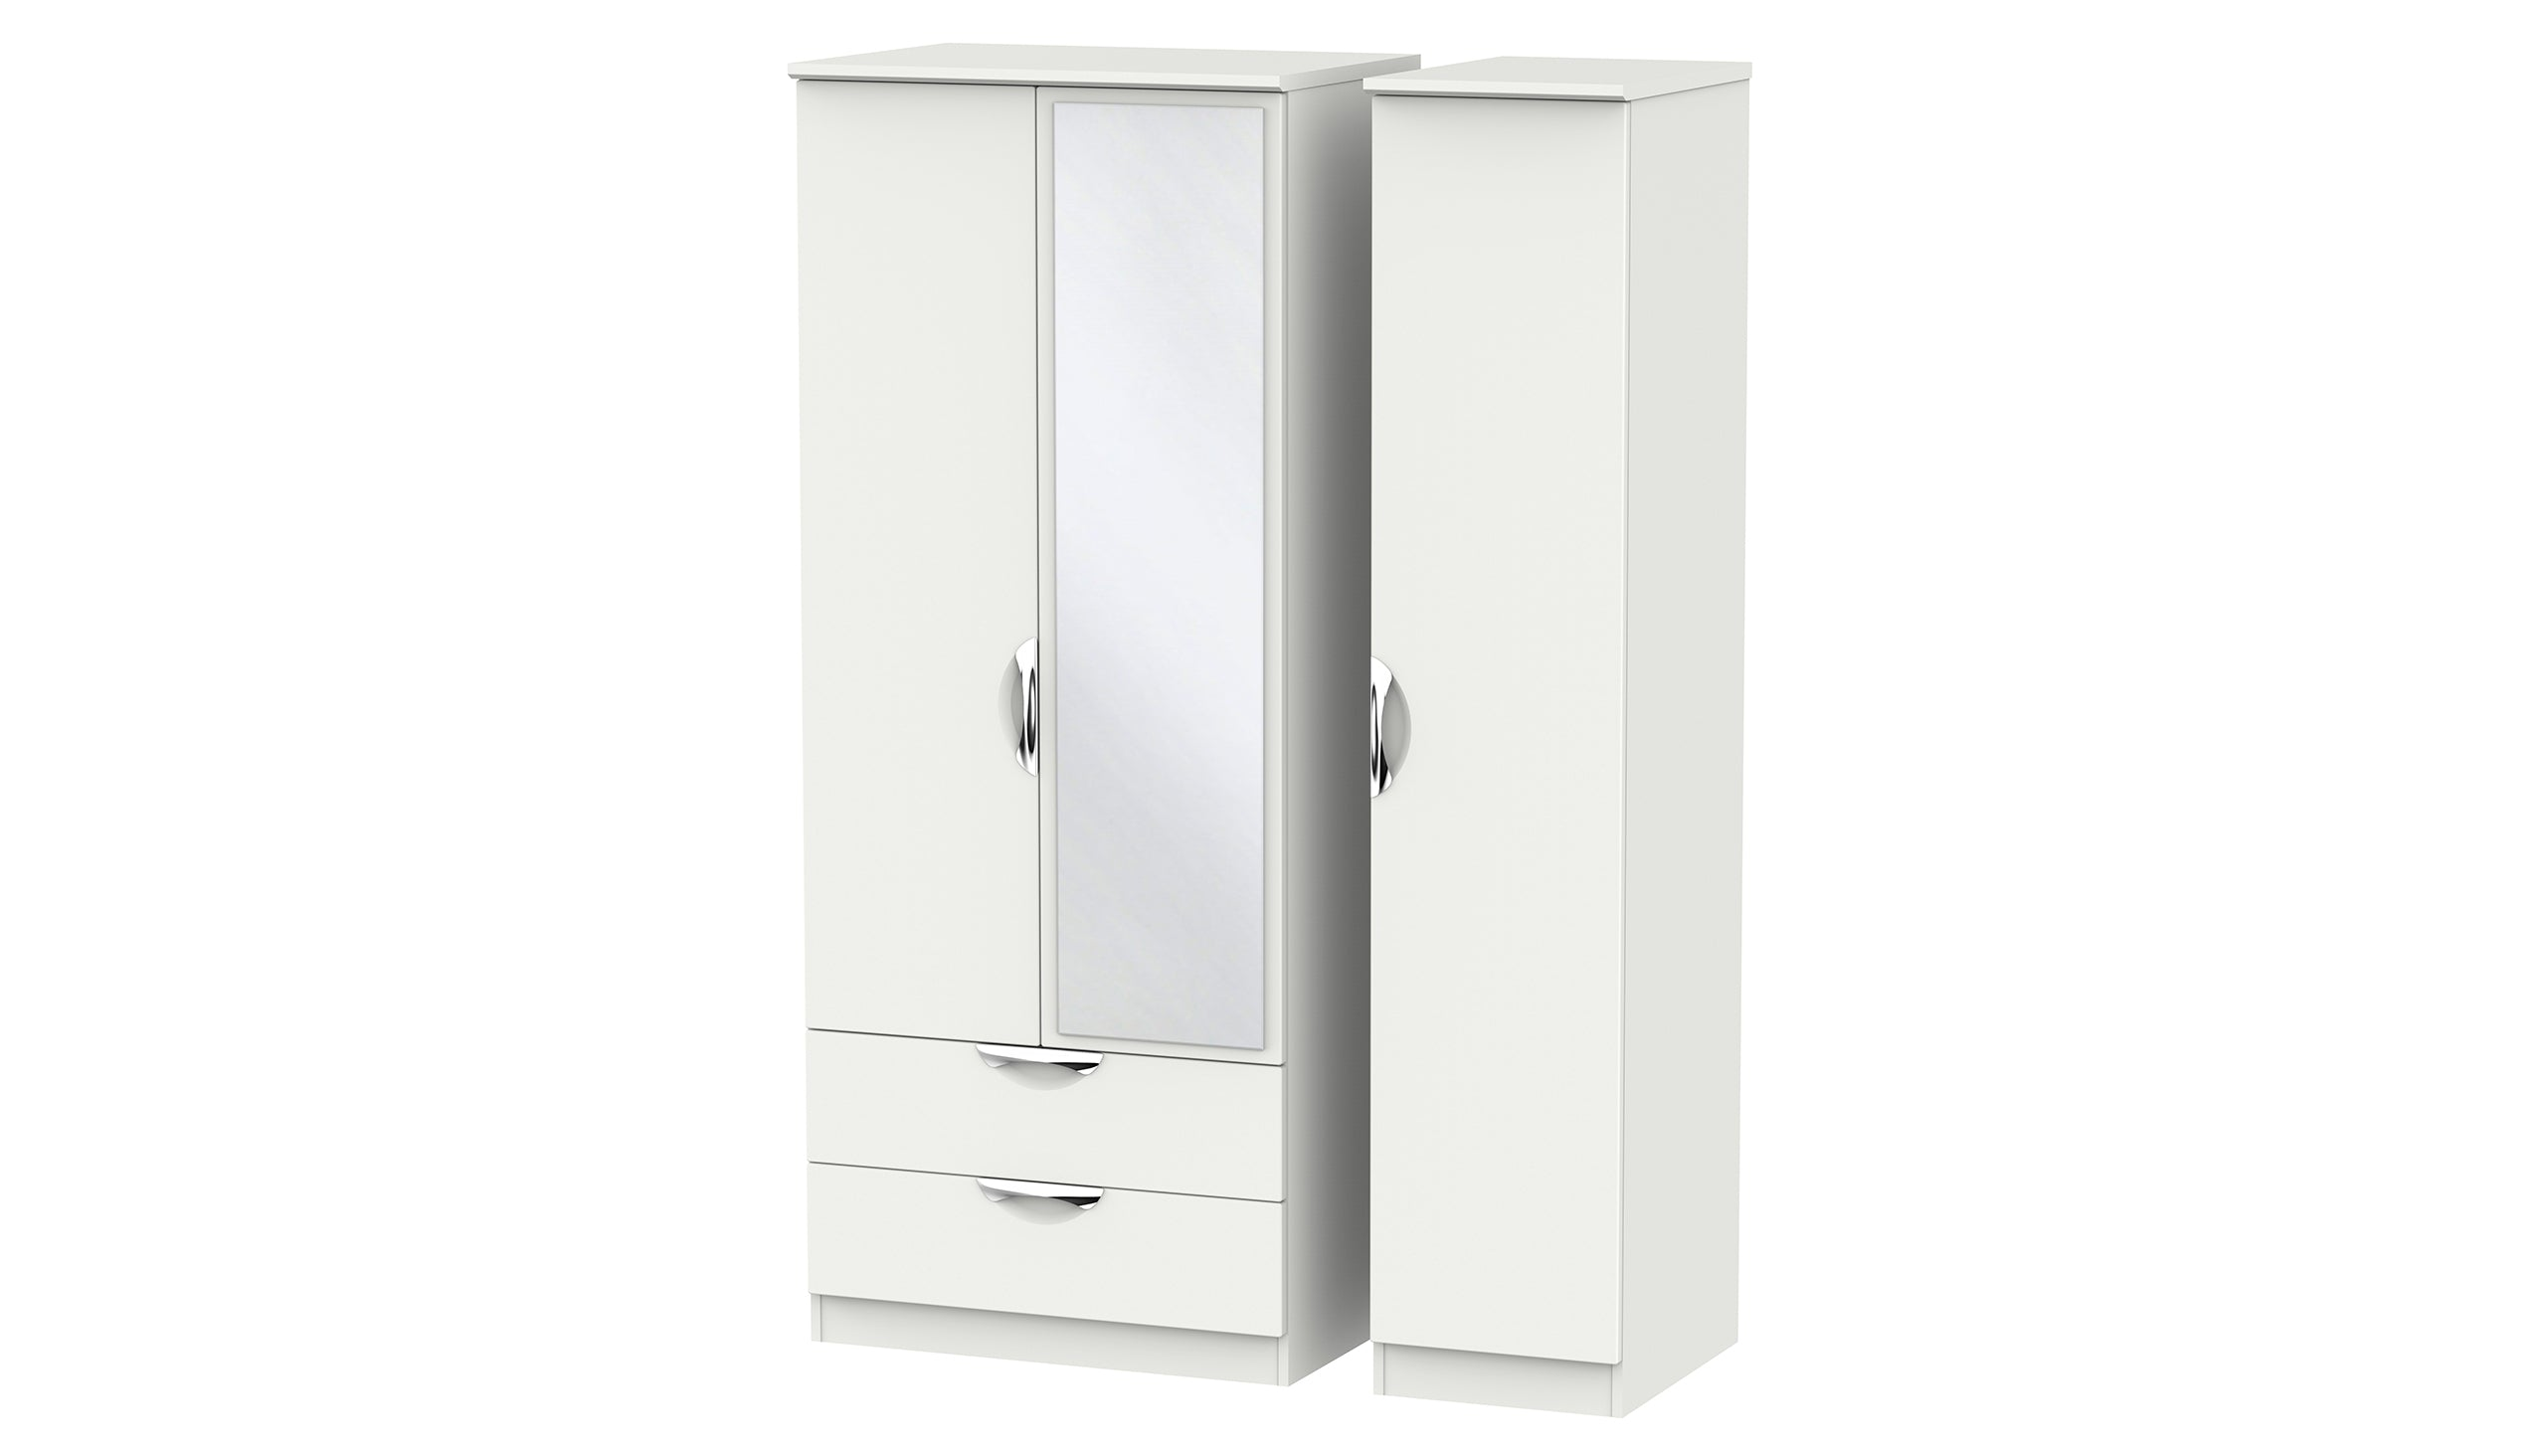 Moda 3 Door 2 Drawer 1 Mirror Wardrobe - AHF Furniture & Carpets